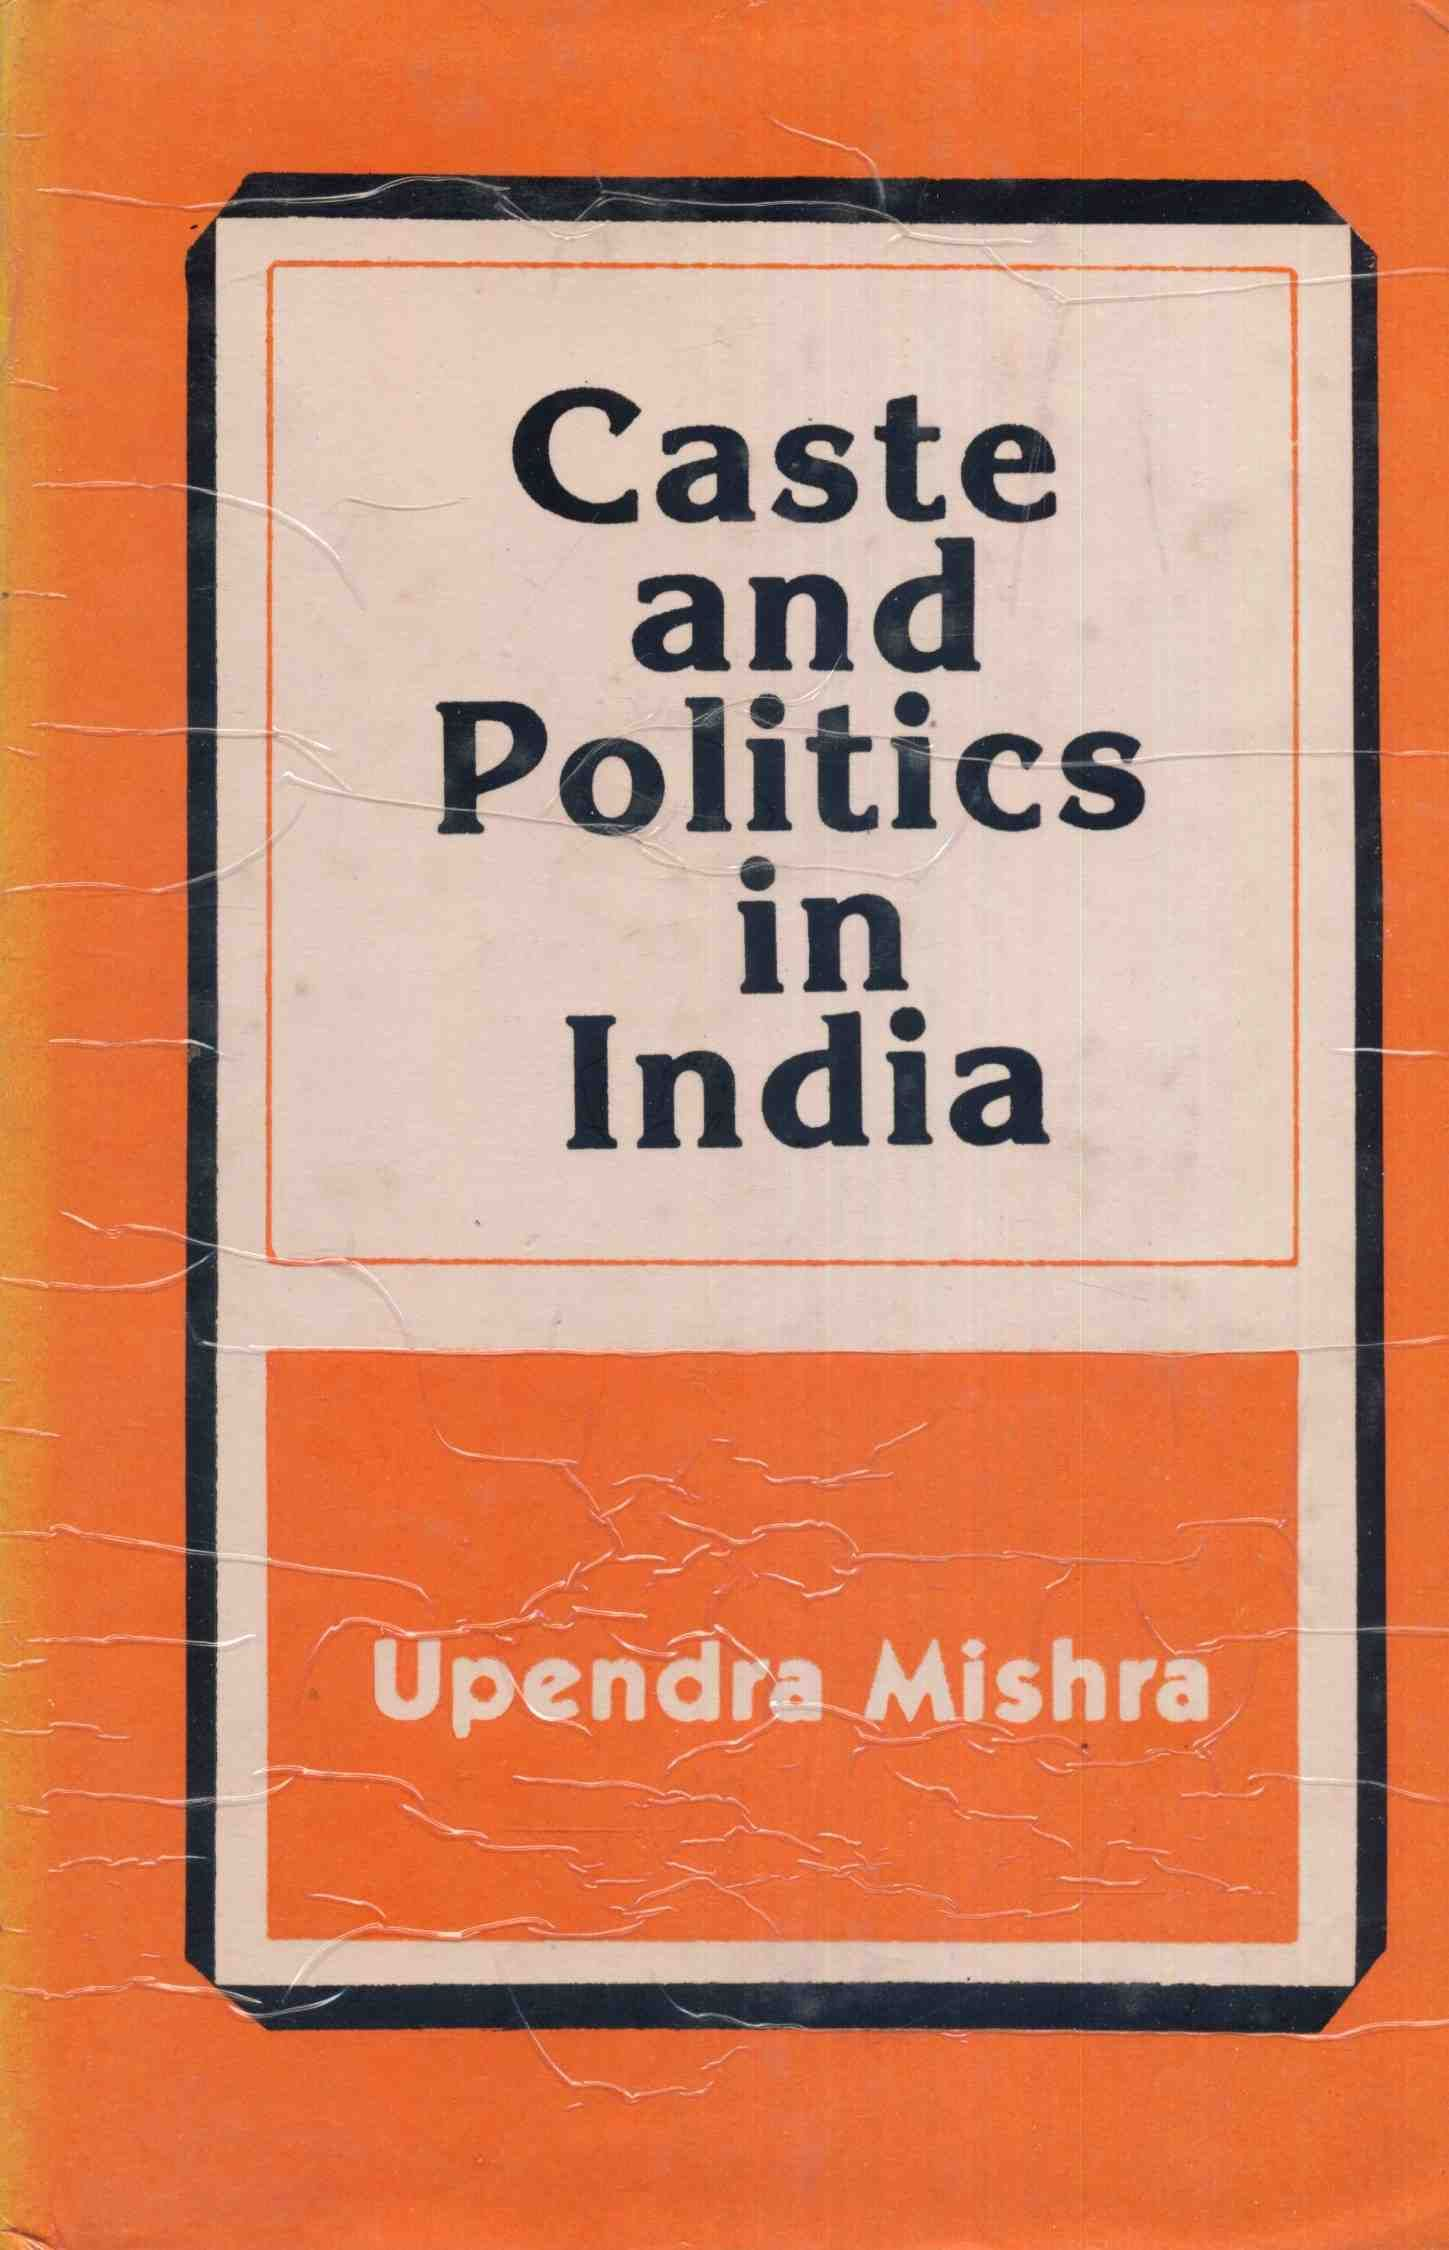 "caste and politics in india According to christophe jaffrelot, 'caste forms the mosaic of indian politics and indians do not cast their vote but they vote their caste"" caste has always been the determinant of politics in india even national movement has seen caste politics."